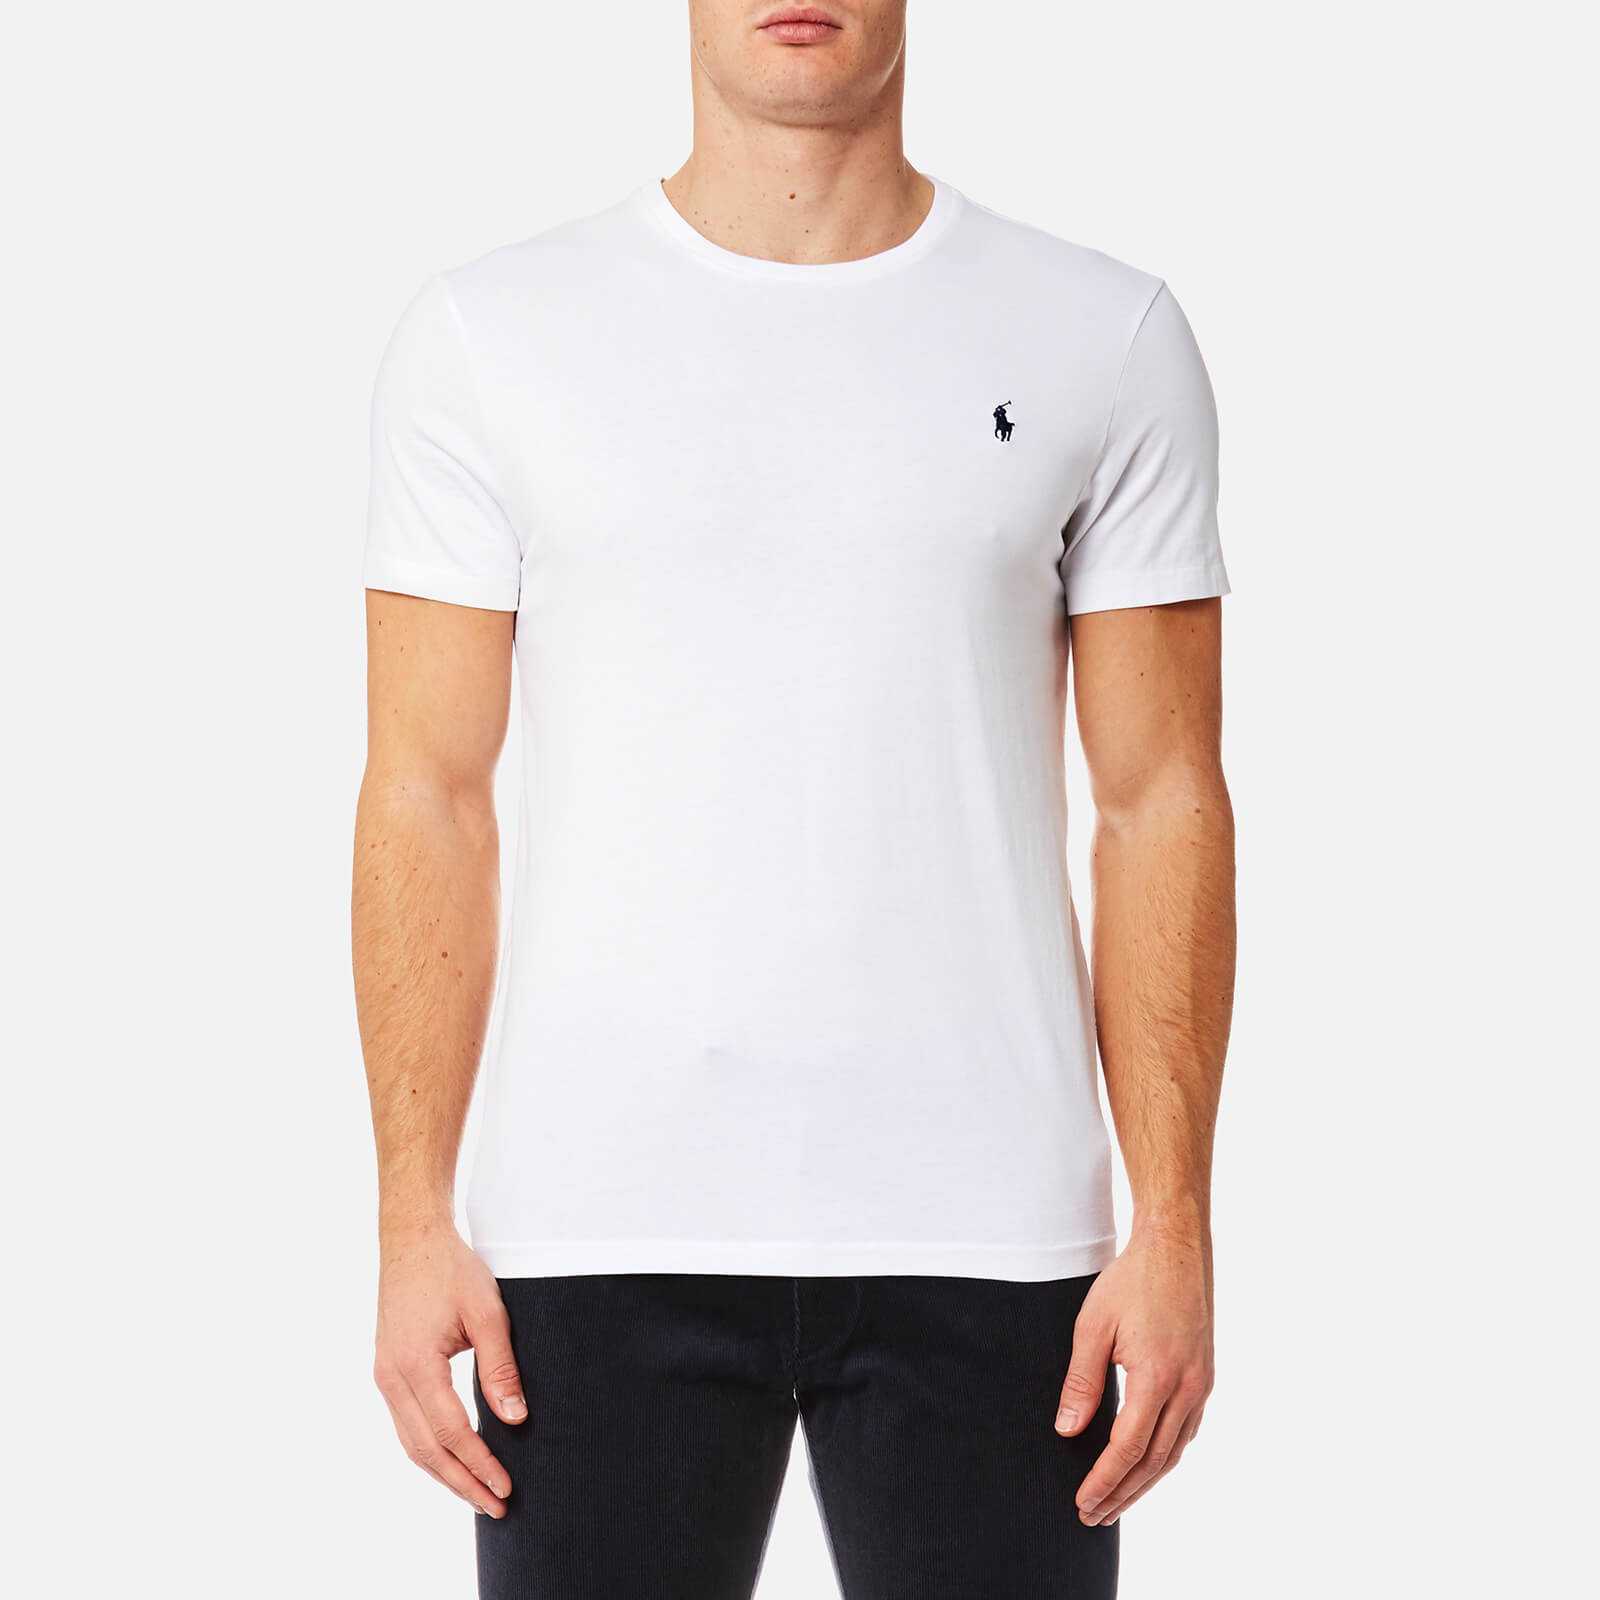 eb3924916 Polo Ralph Lauren Men's Custom Fit Crew Neck T-Shirt - White - Free UK  Delivery over £50